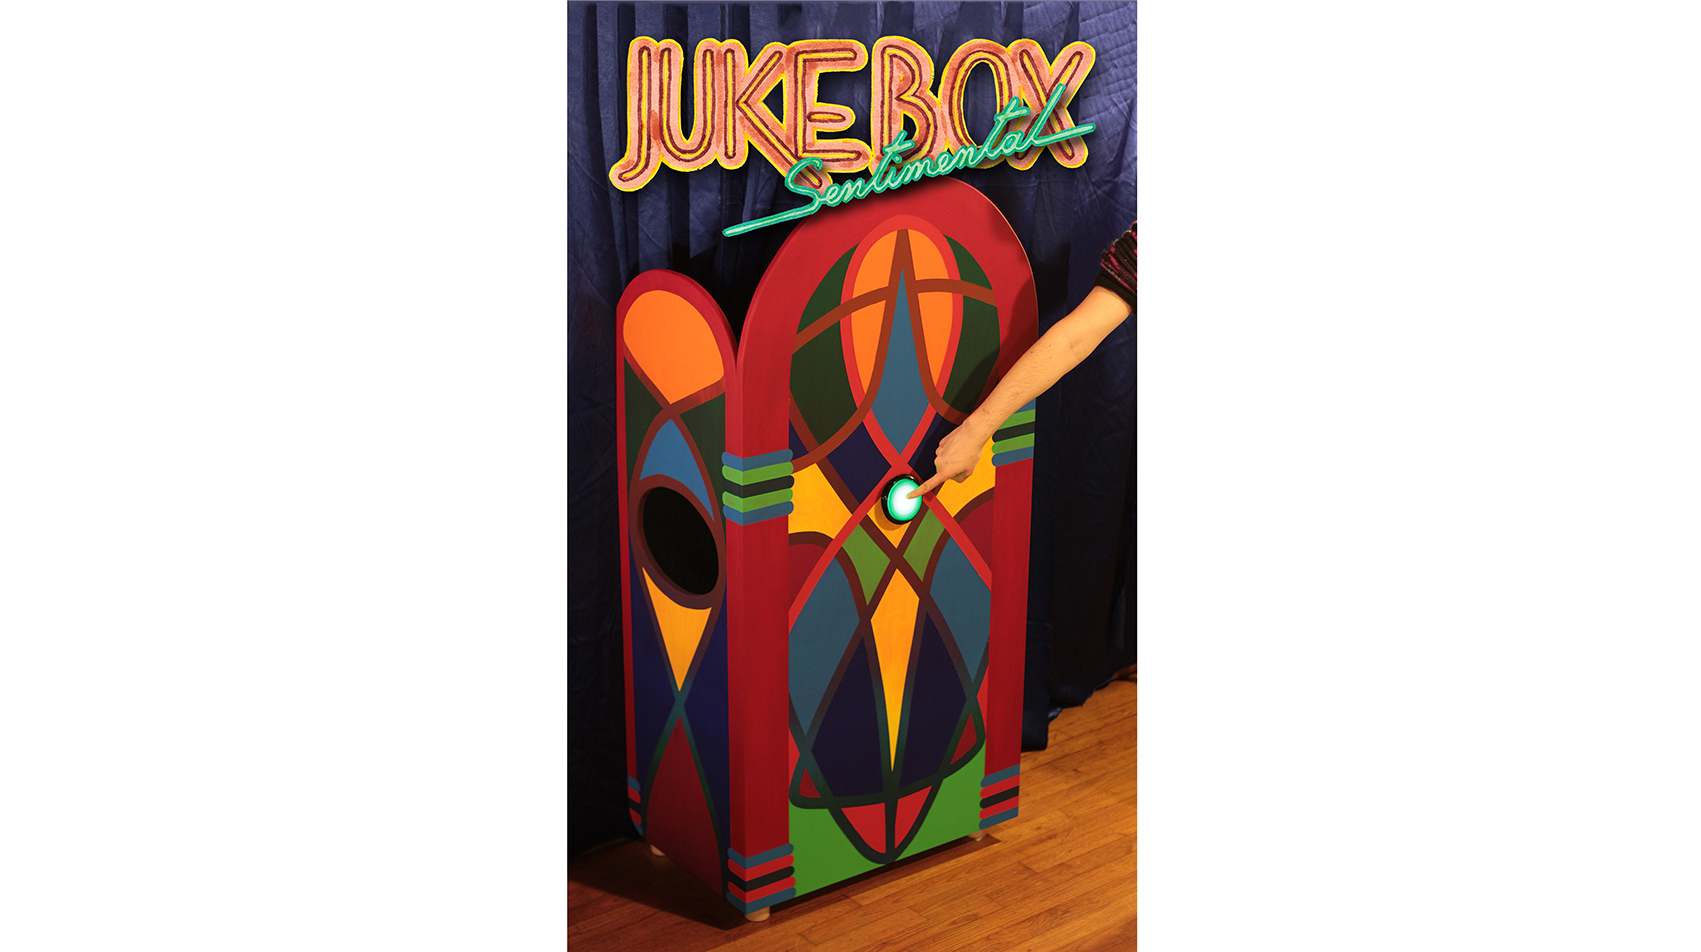 JUKEBOX SENTIMENTAL